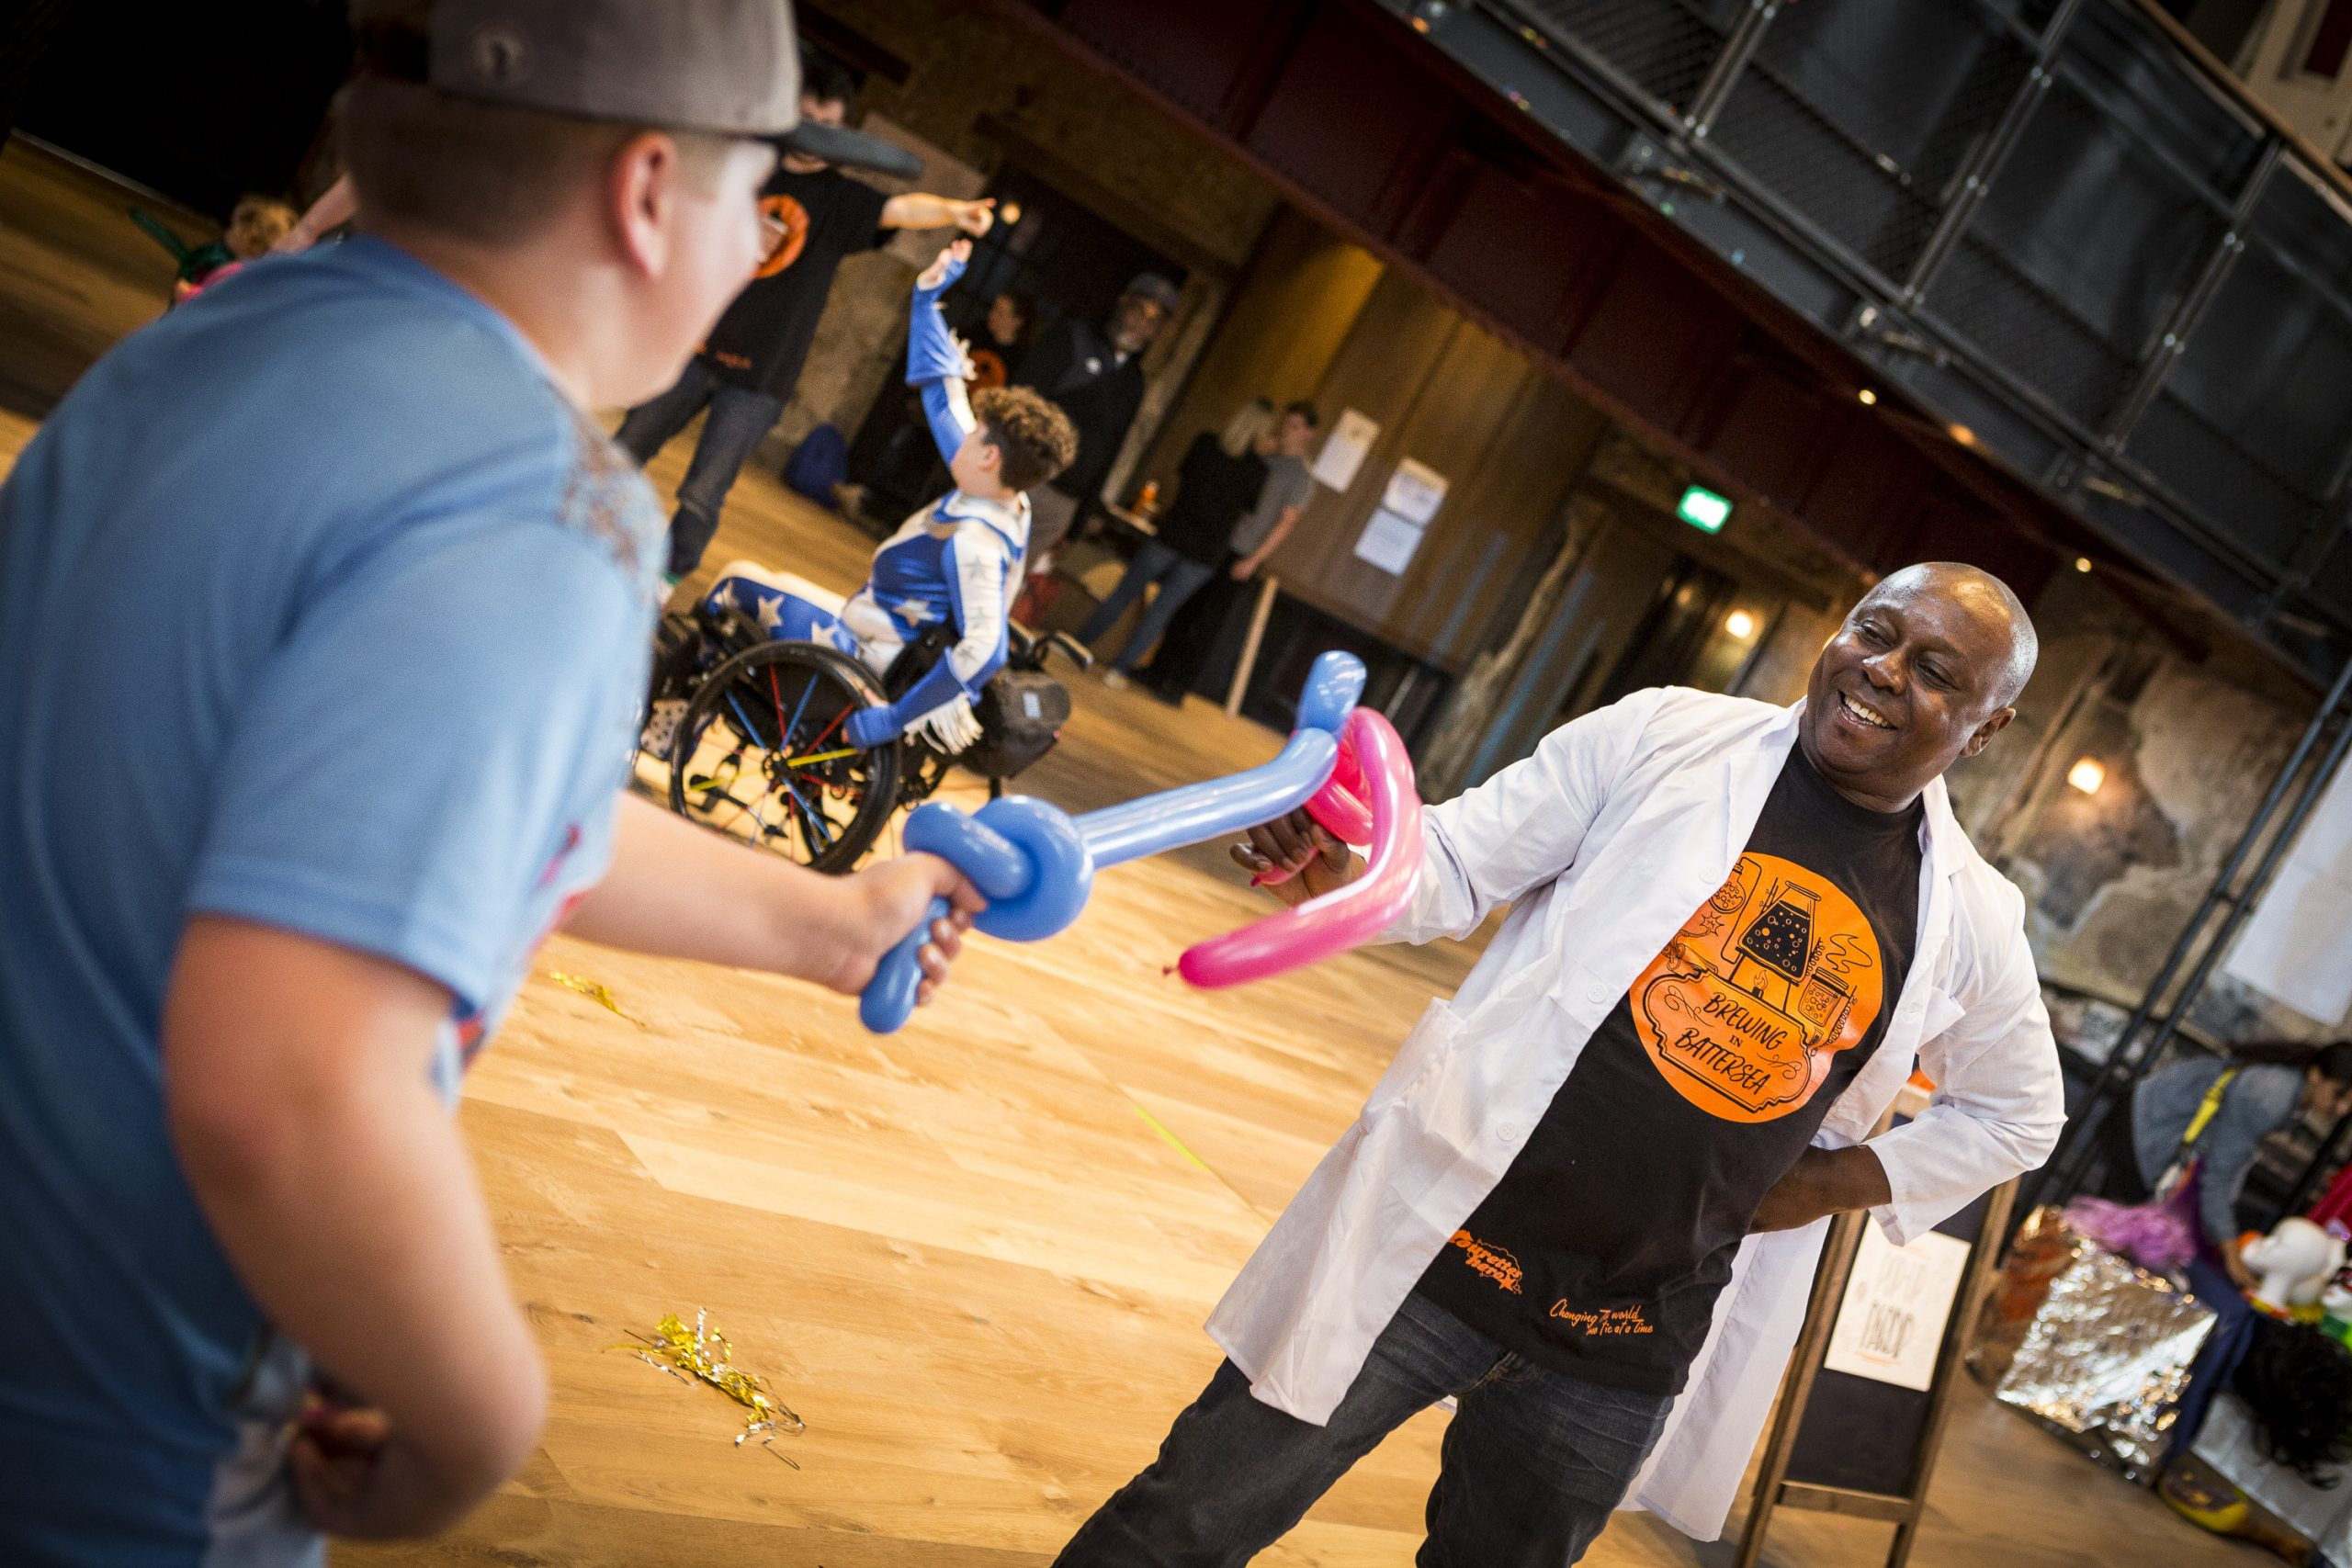 A photograph of David Ogwe sword fighting a young person with balloon swords at Touretteshero's Brewing in Battersea event in the Grand Hall in Battersea Arts Centre. David is smiling with one hand on his hip and the other hand brandishing a pink balloon sword. He is wearing a white lab coat and a black t-shirt with an orange 'Brewing in Battersea' graphic. The young person is wearing a flat back hat and blue t-shirt. Touretteshero can be seen in the background of the picture in her blue and white superhero costume. She is sitting in a black wheelchair with multicoloured spokes.